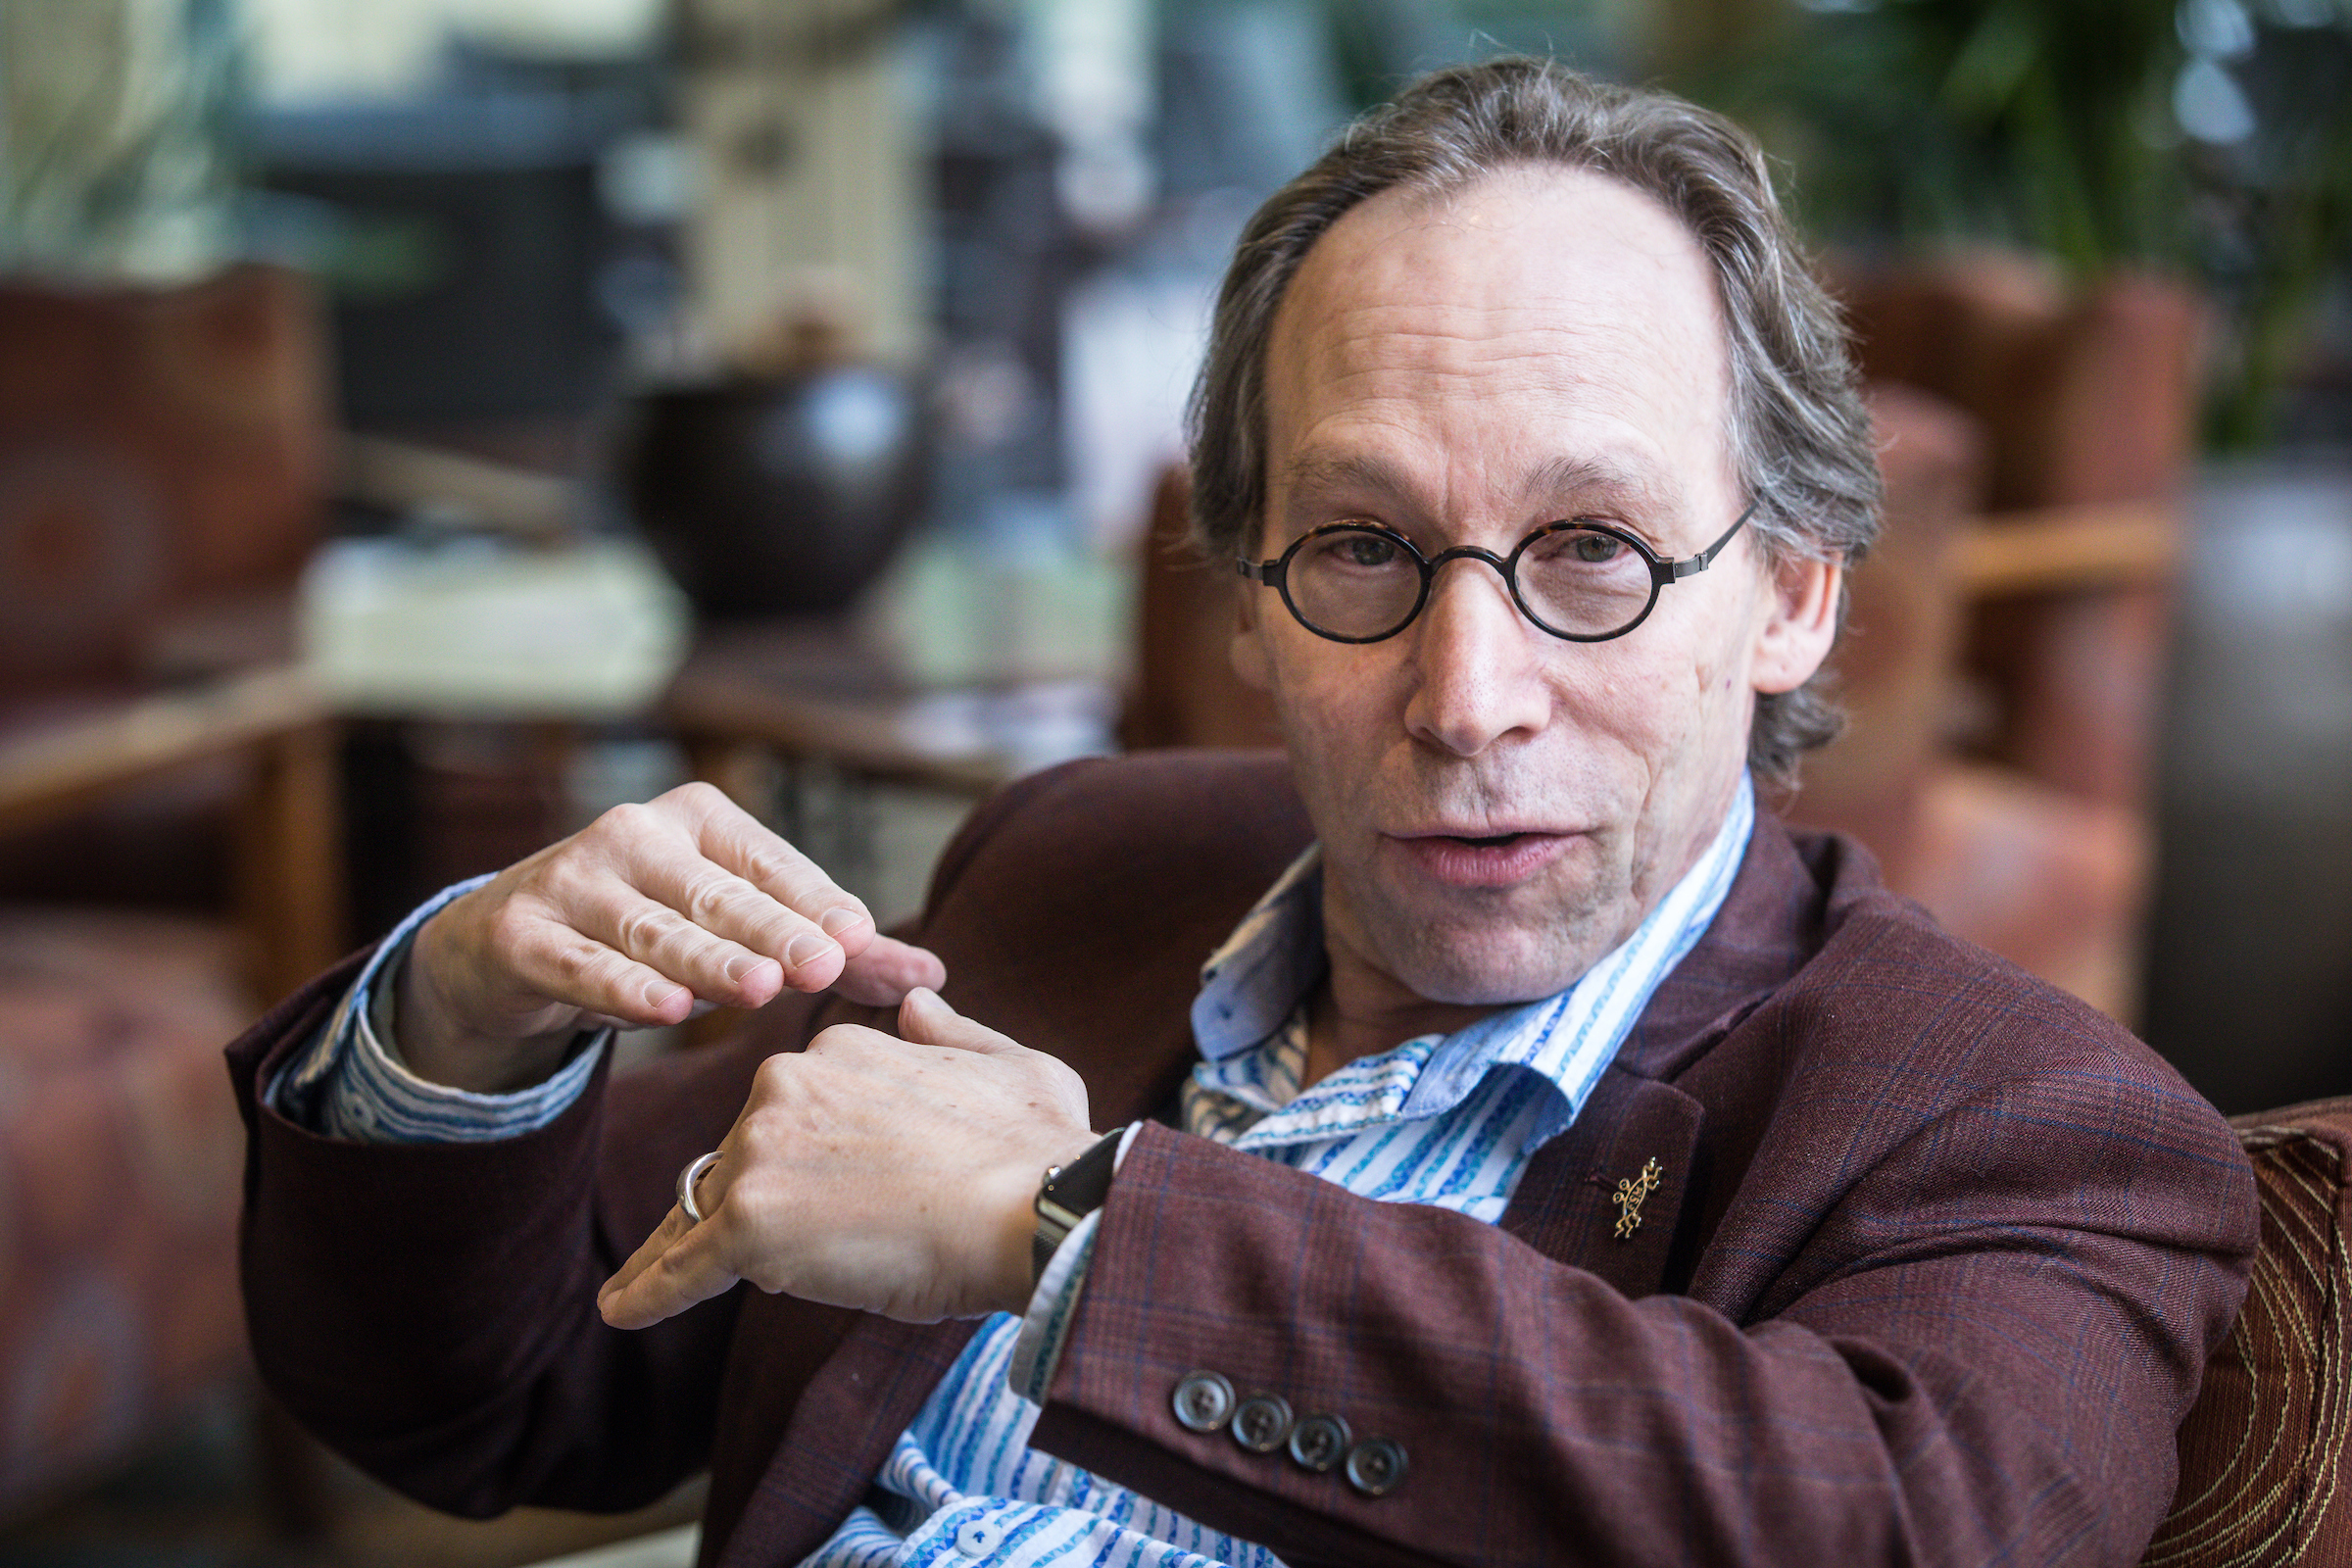 asus lawrence krauss says alternative facts jeopardize